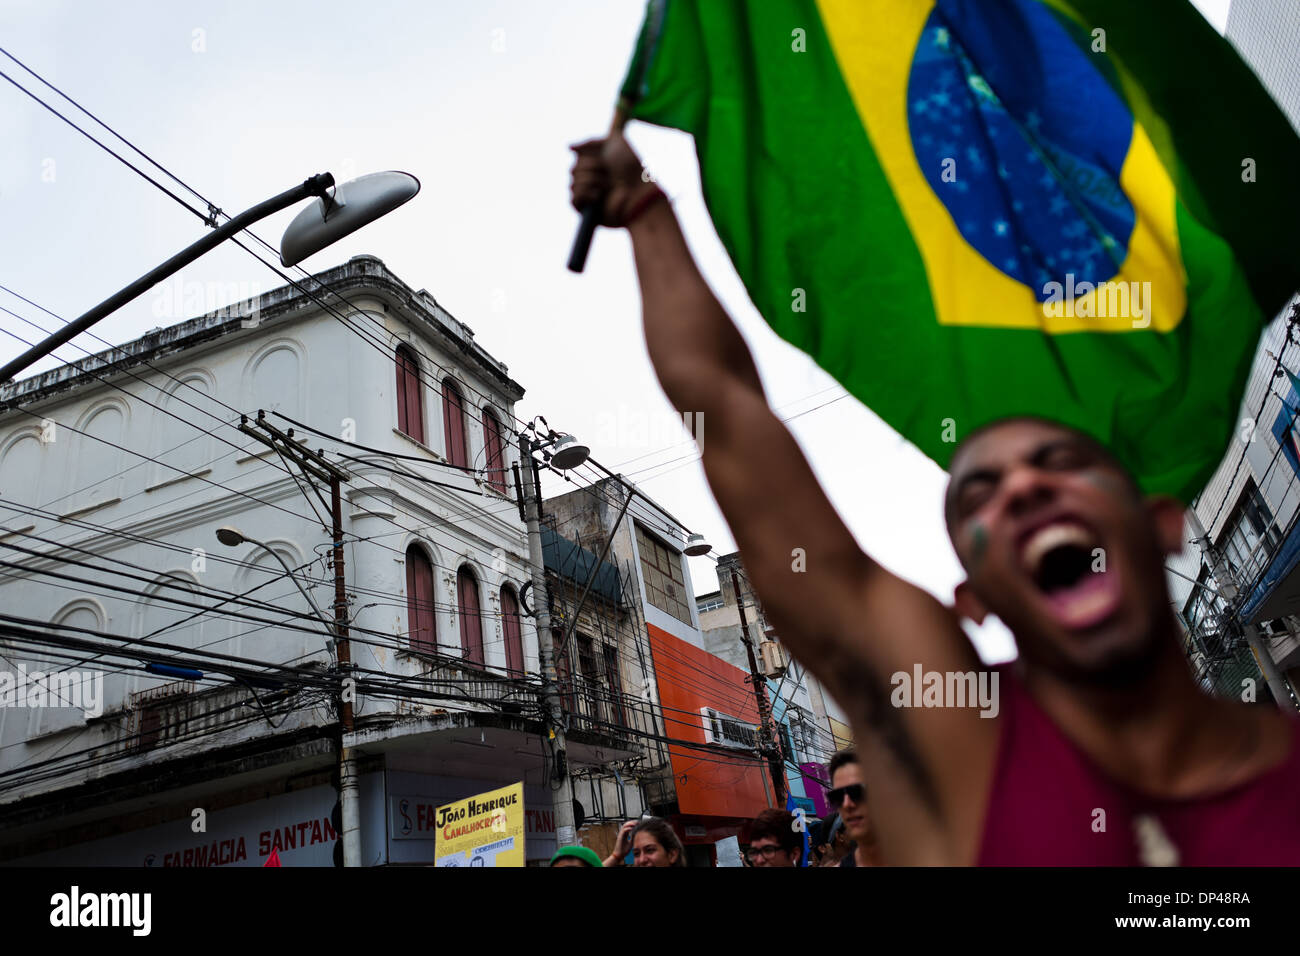 A radical protester, holding the Brazilian flag, screams during the protest march in Salvador, Bahia, Brazil. - Stock Image